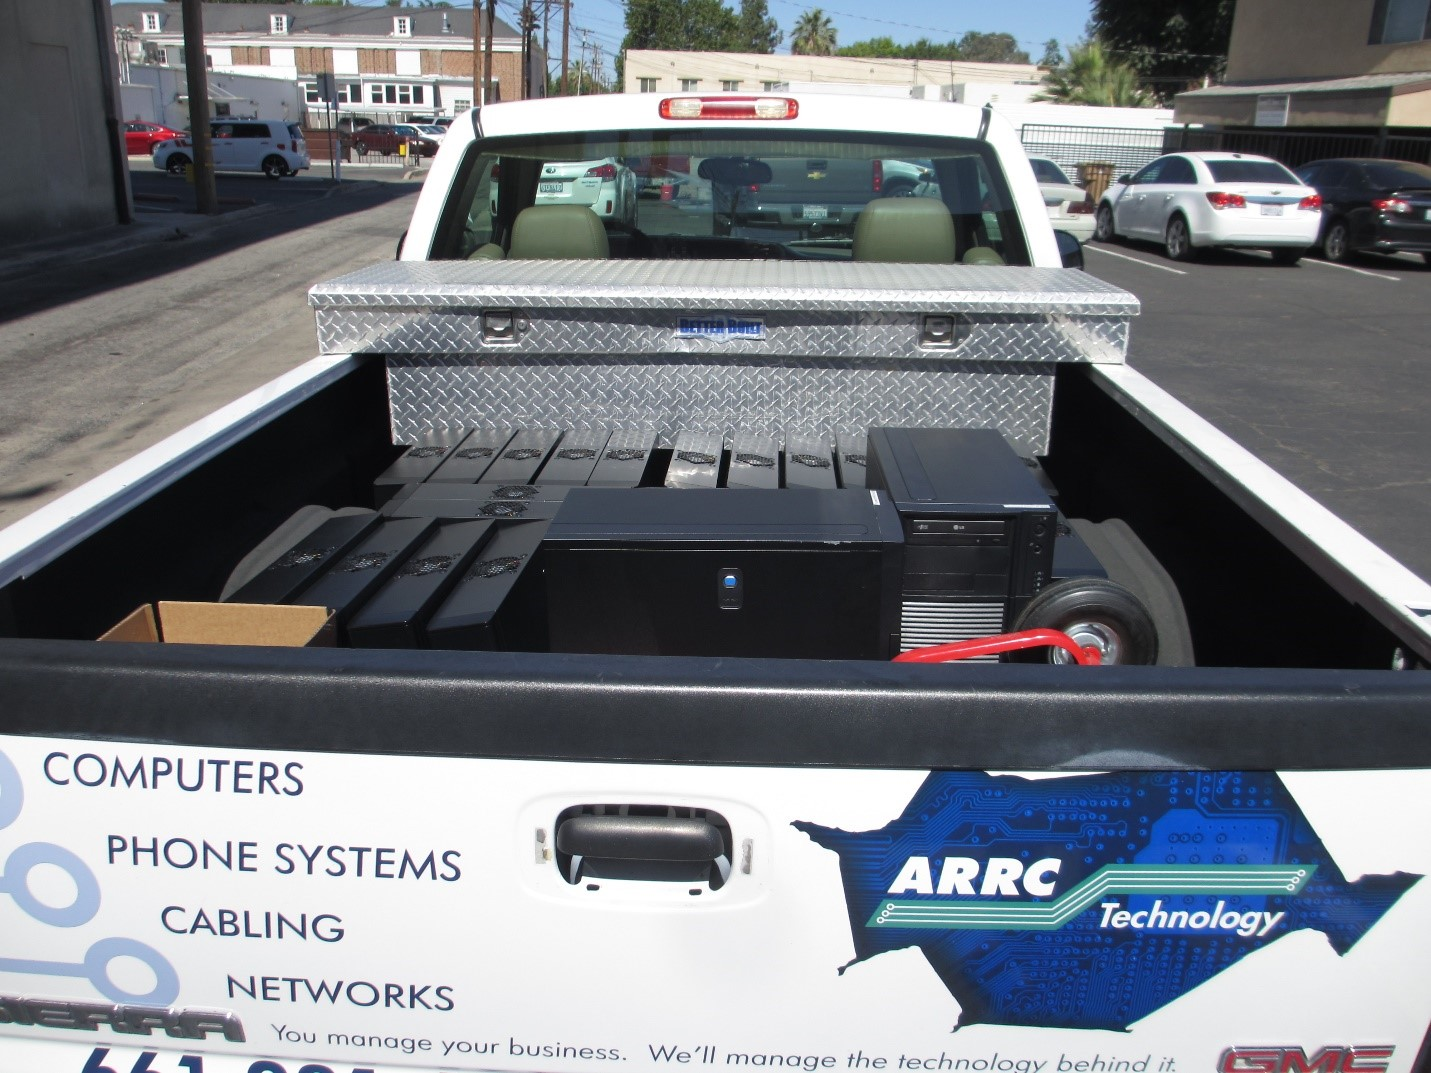 ARRC Technology truck with computers